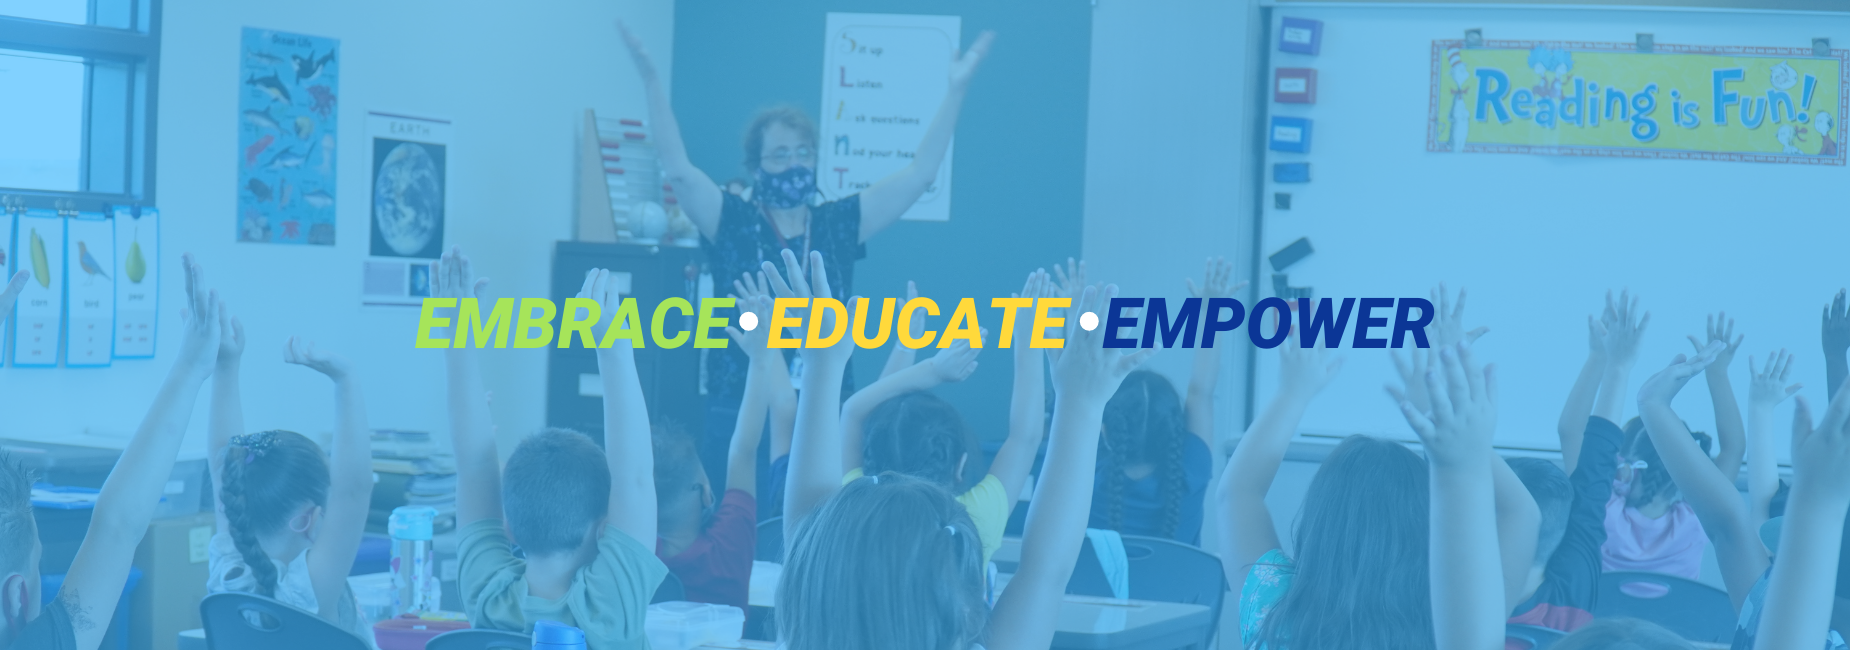 embrace educate empower